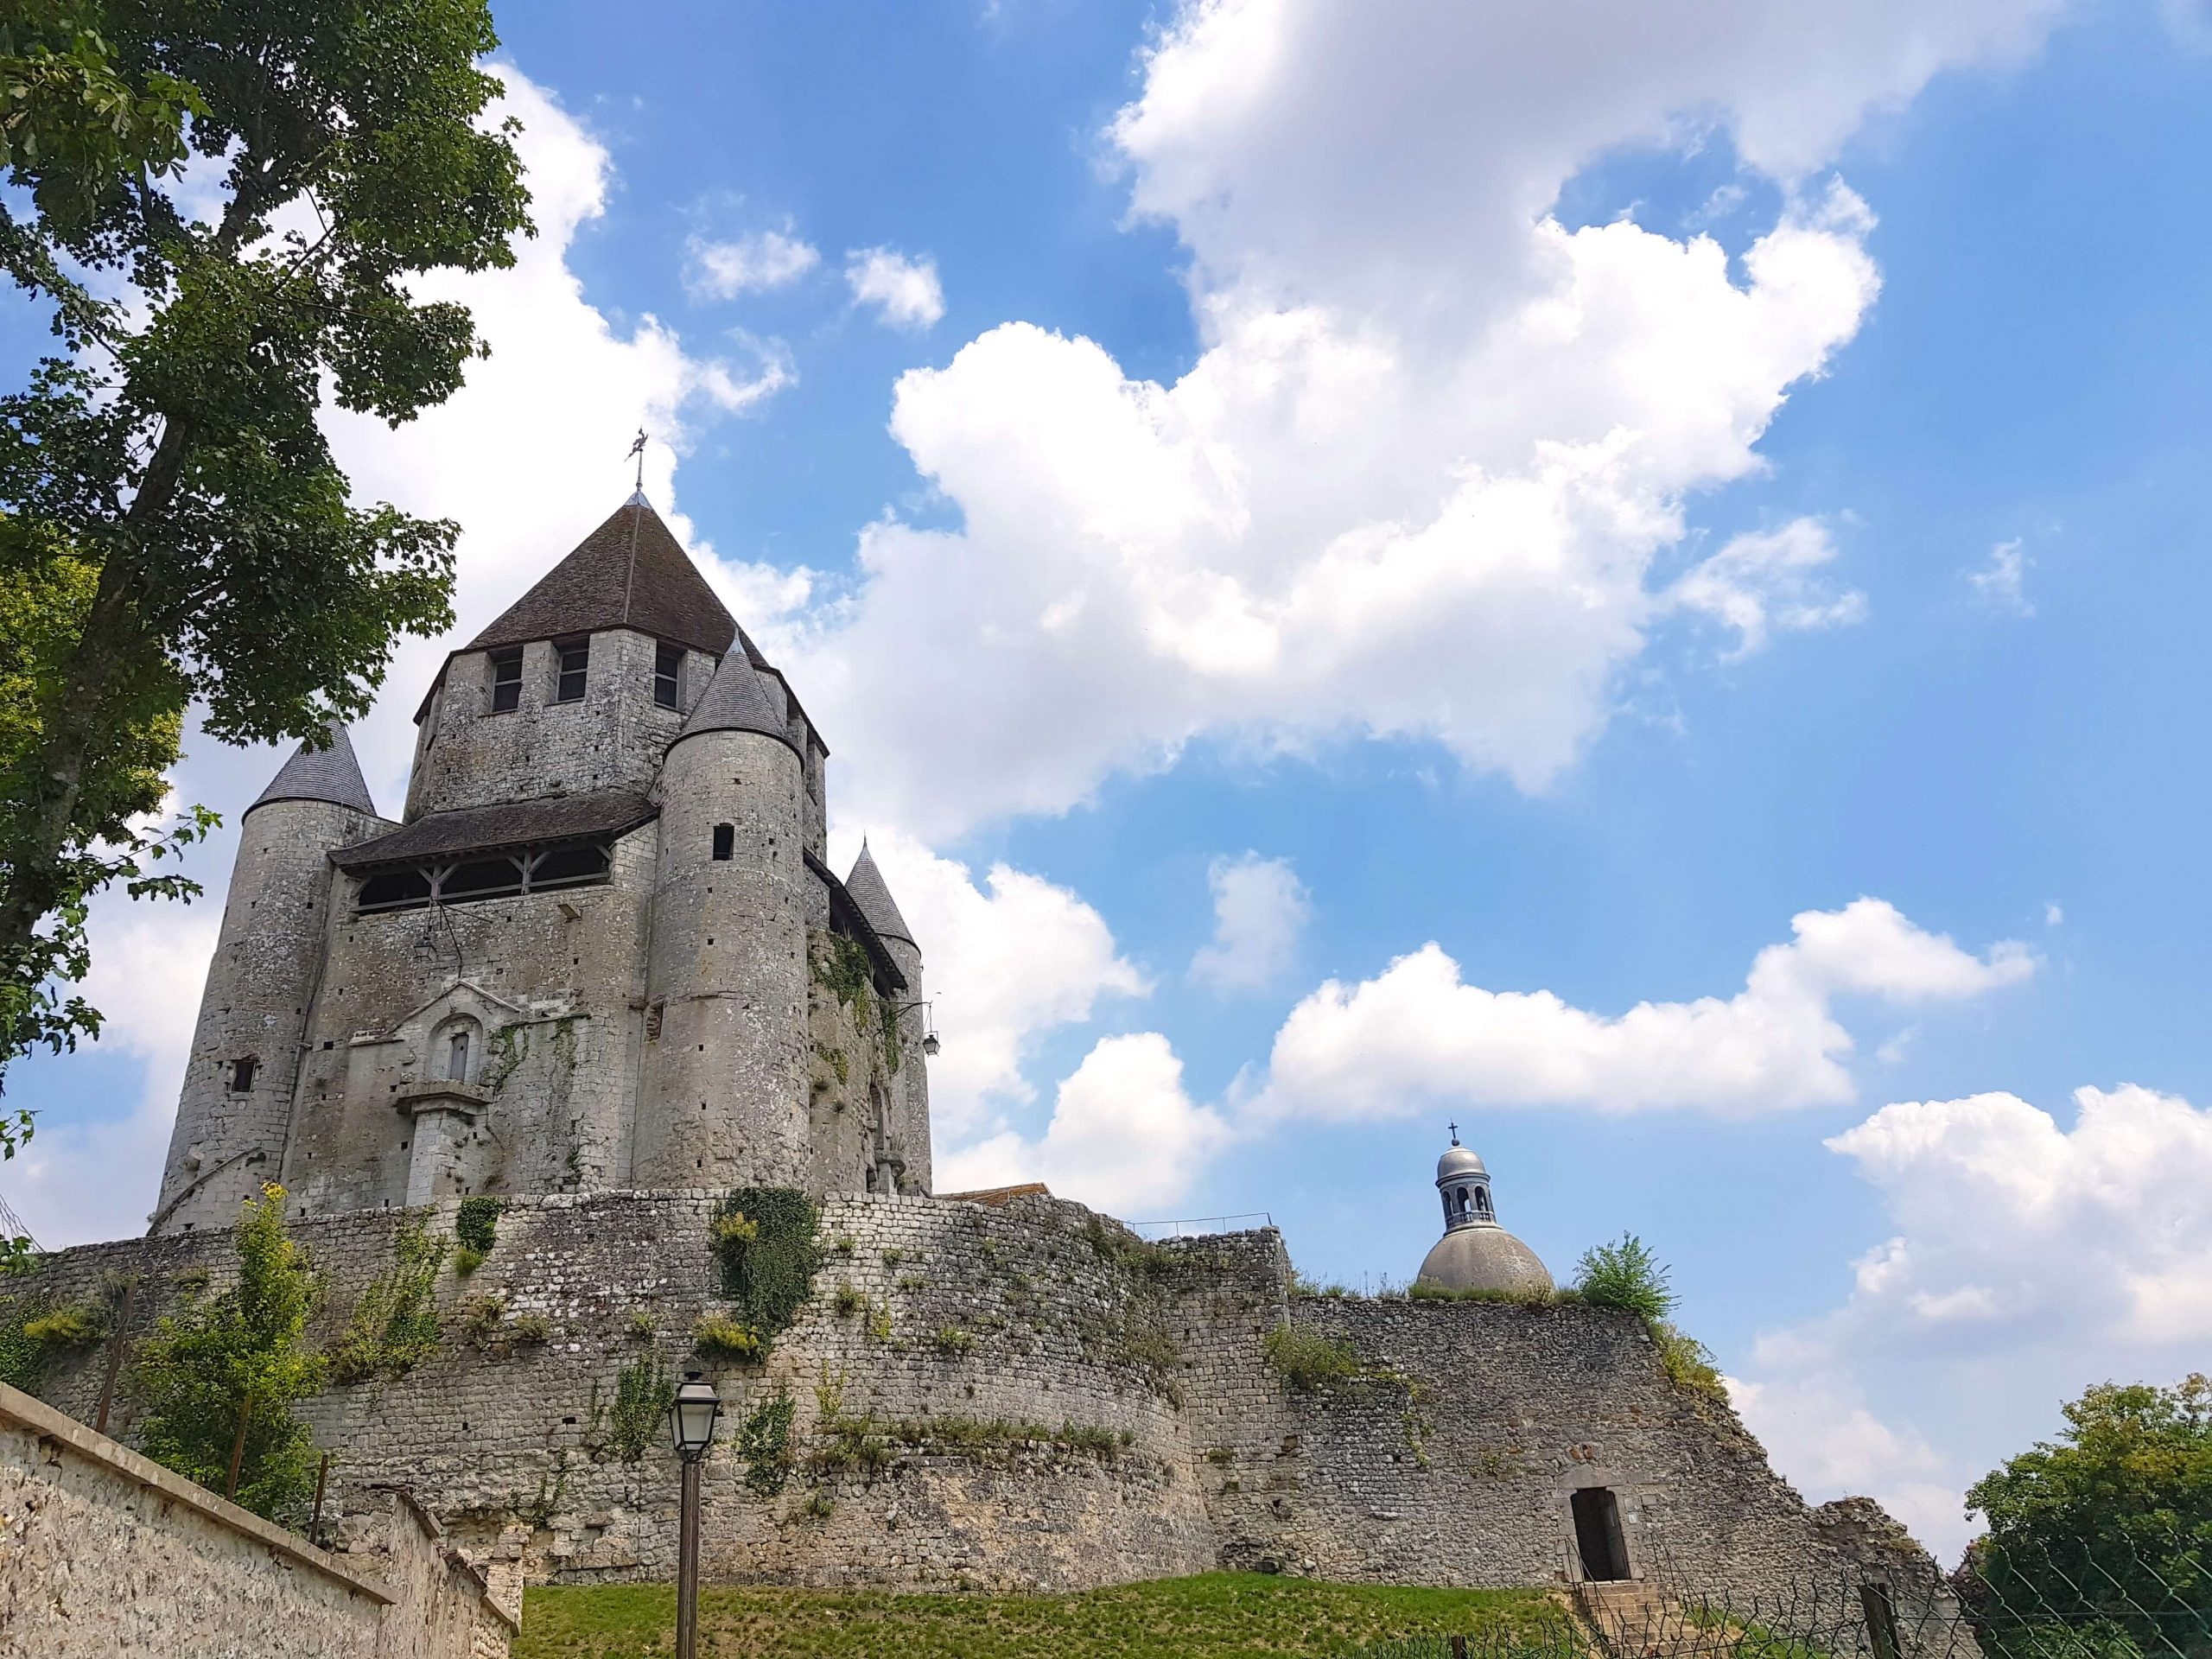 Caesar's Tower or Tour César - one of the best things to do in Provins, France